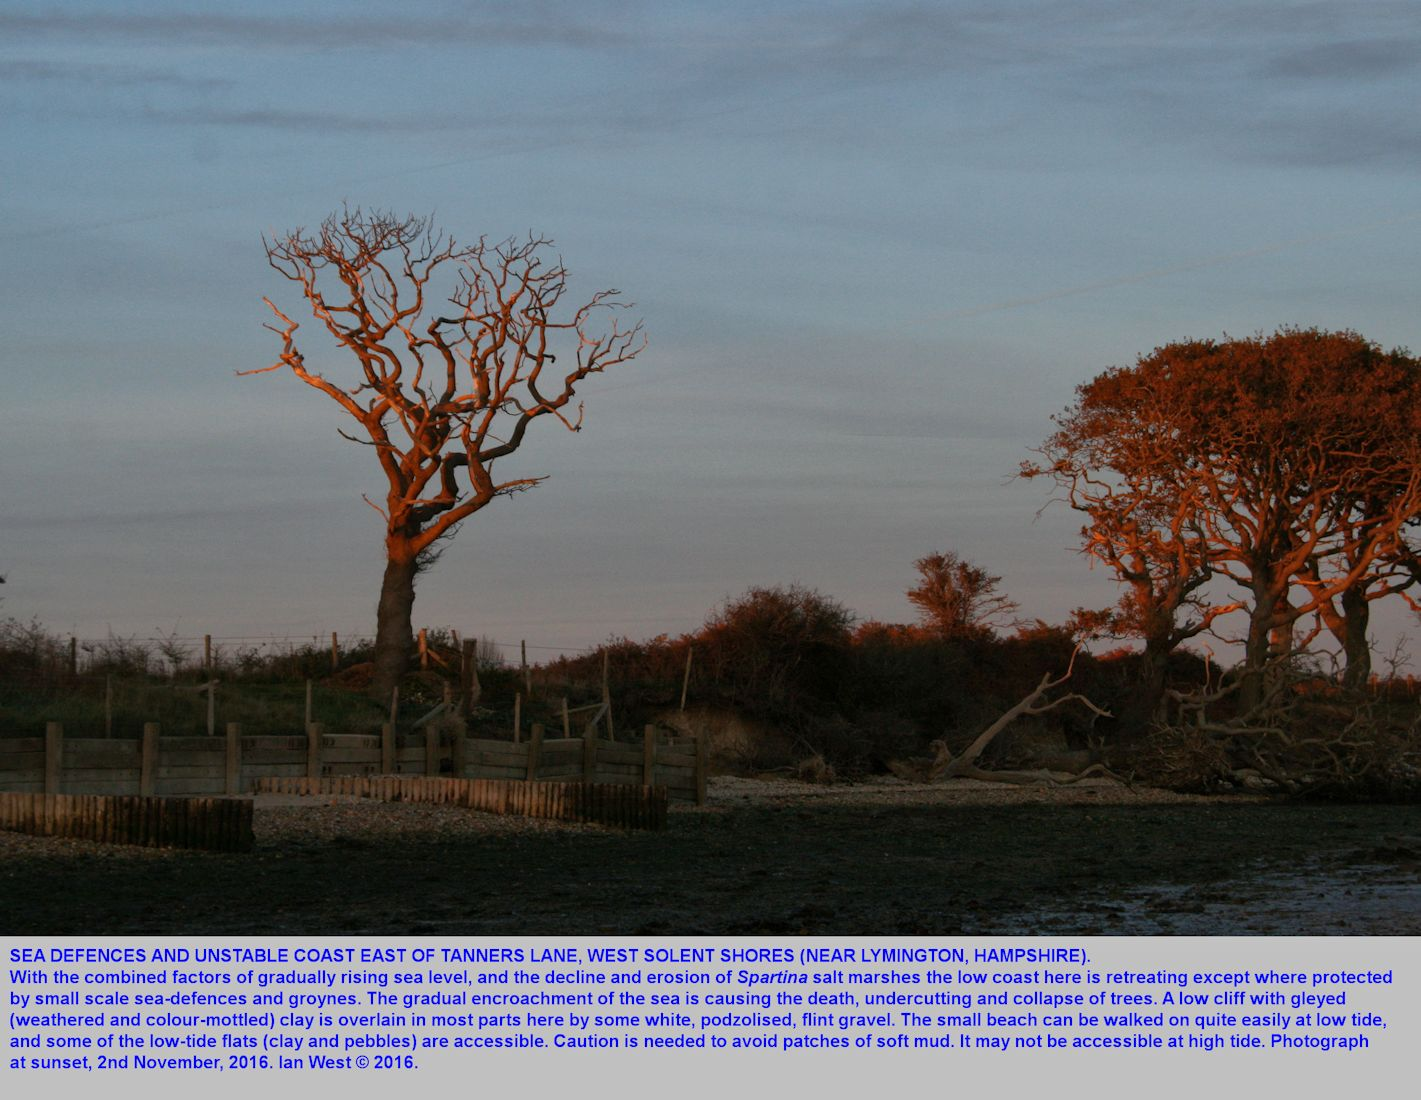 Erosion of the low cliffs east of the house at Tanners Lane, West Solent, showing dead and fallen trees at sunset, 2nd November 2016